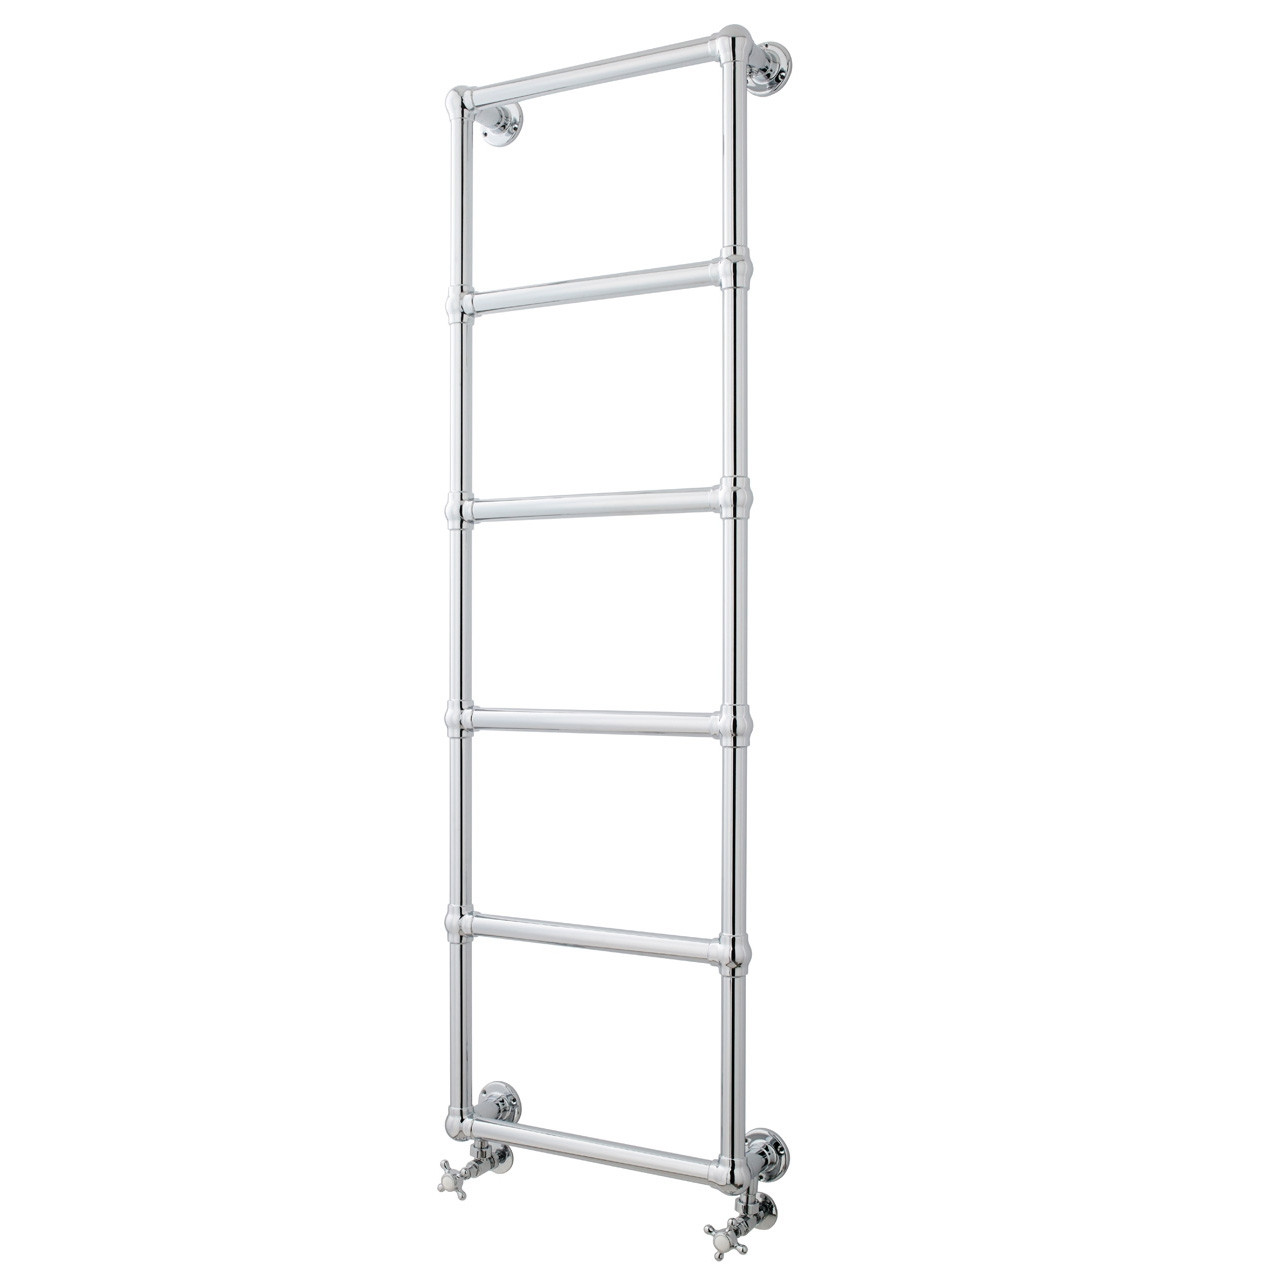 Hudson Reed Countess with Mounted Towel Rail 1550mm x 600mm x 130mm - HL354